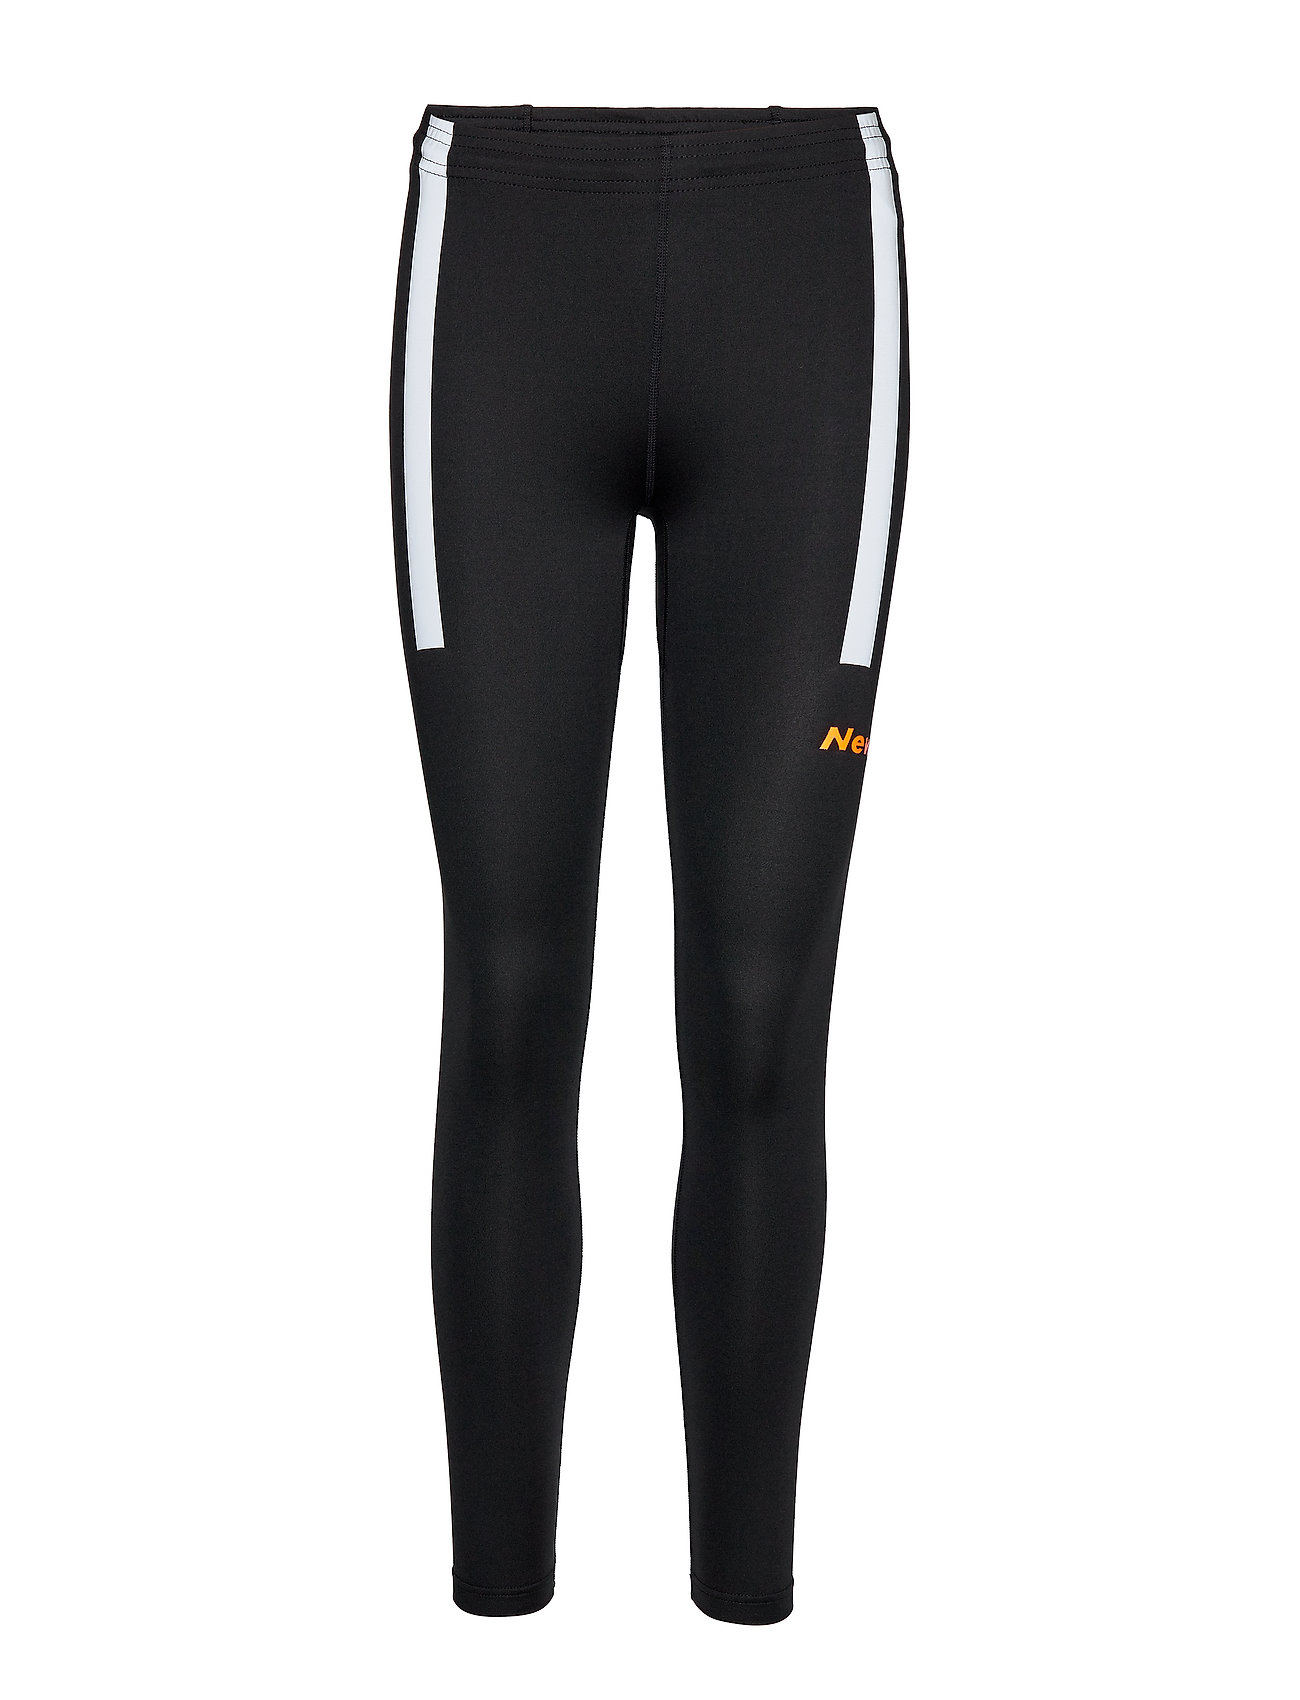 Newline Visio Tights - BLACK/ORANGE